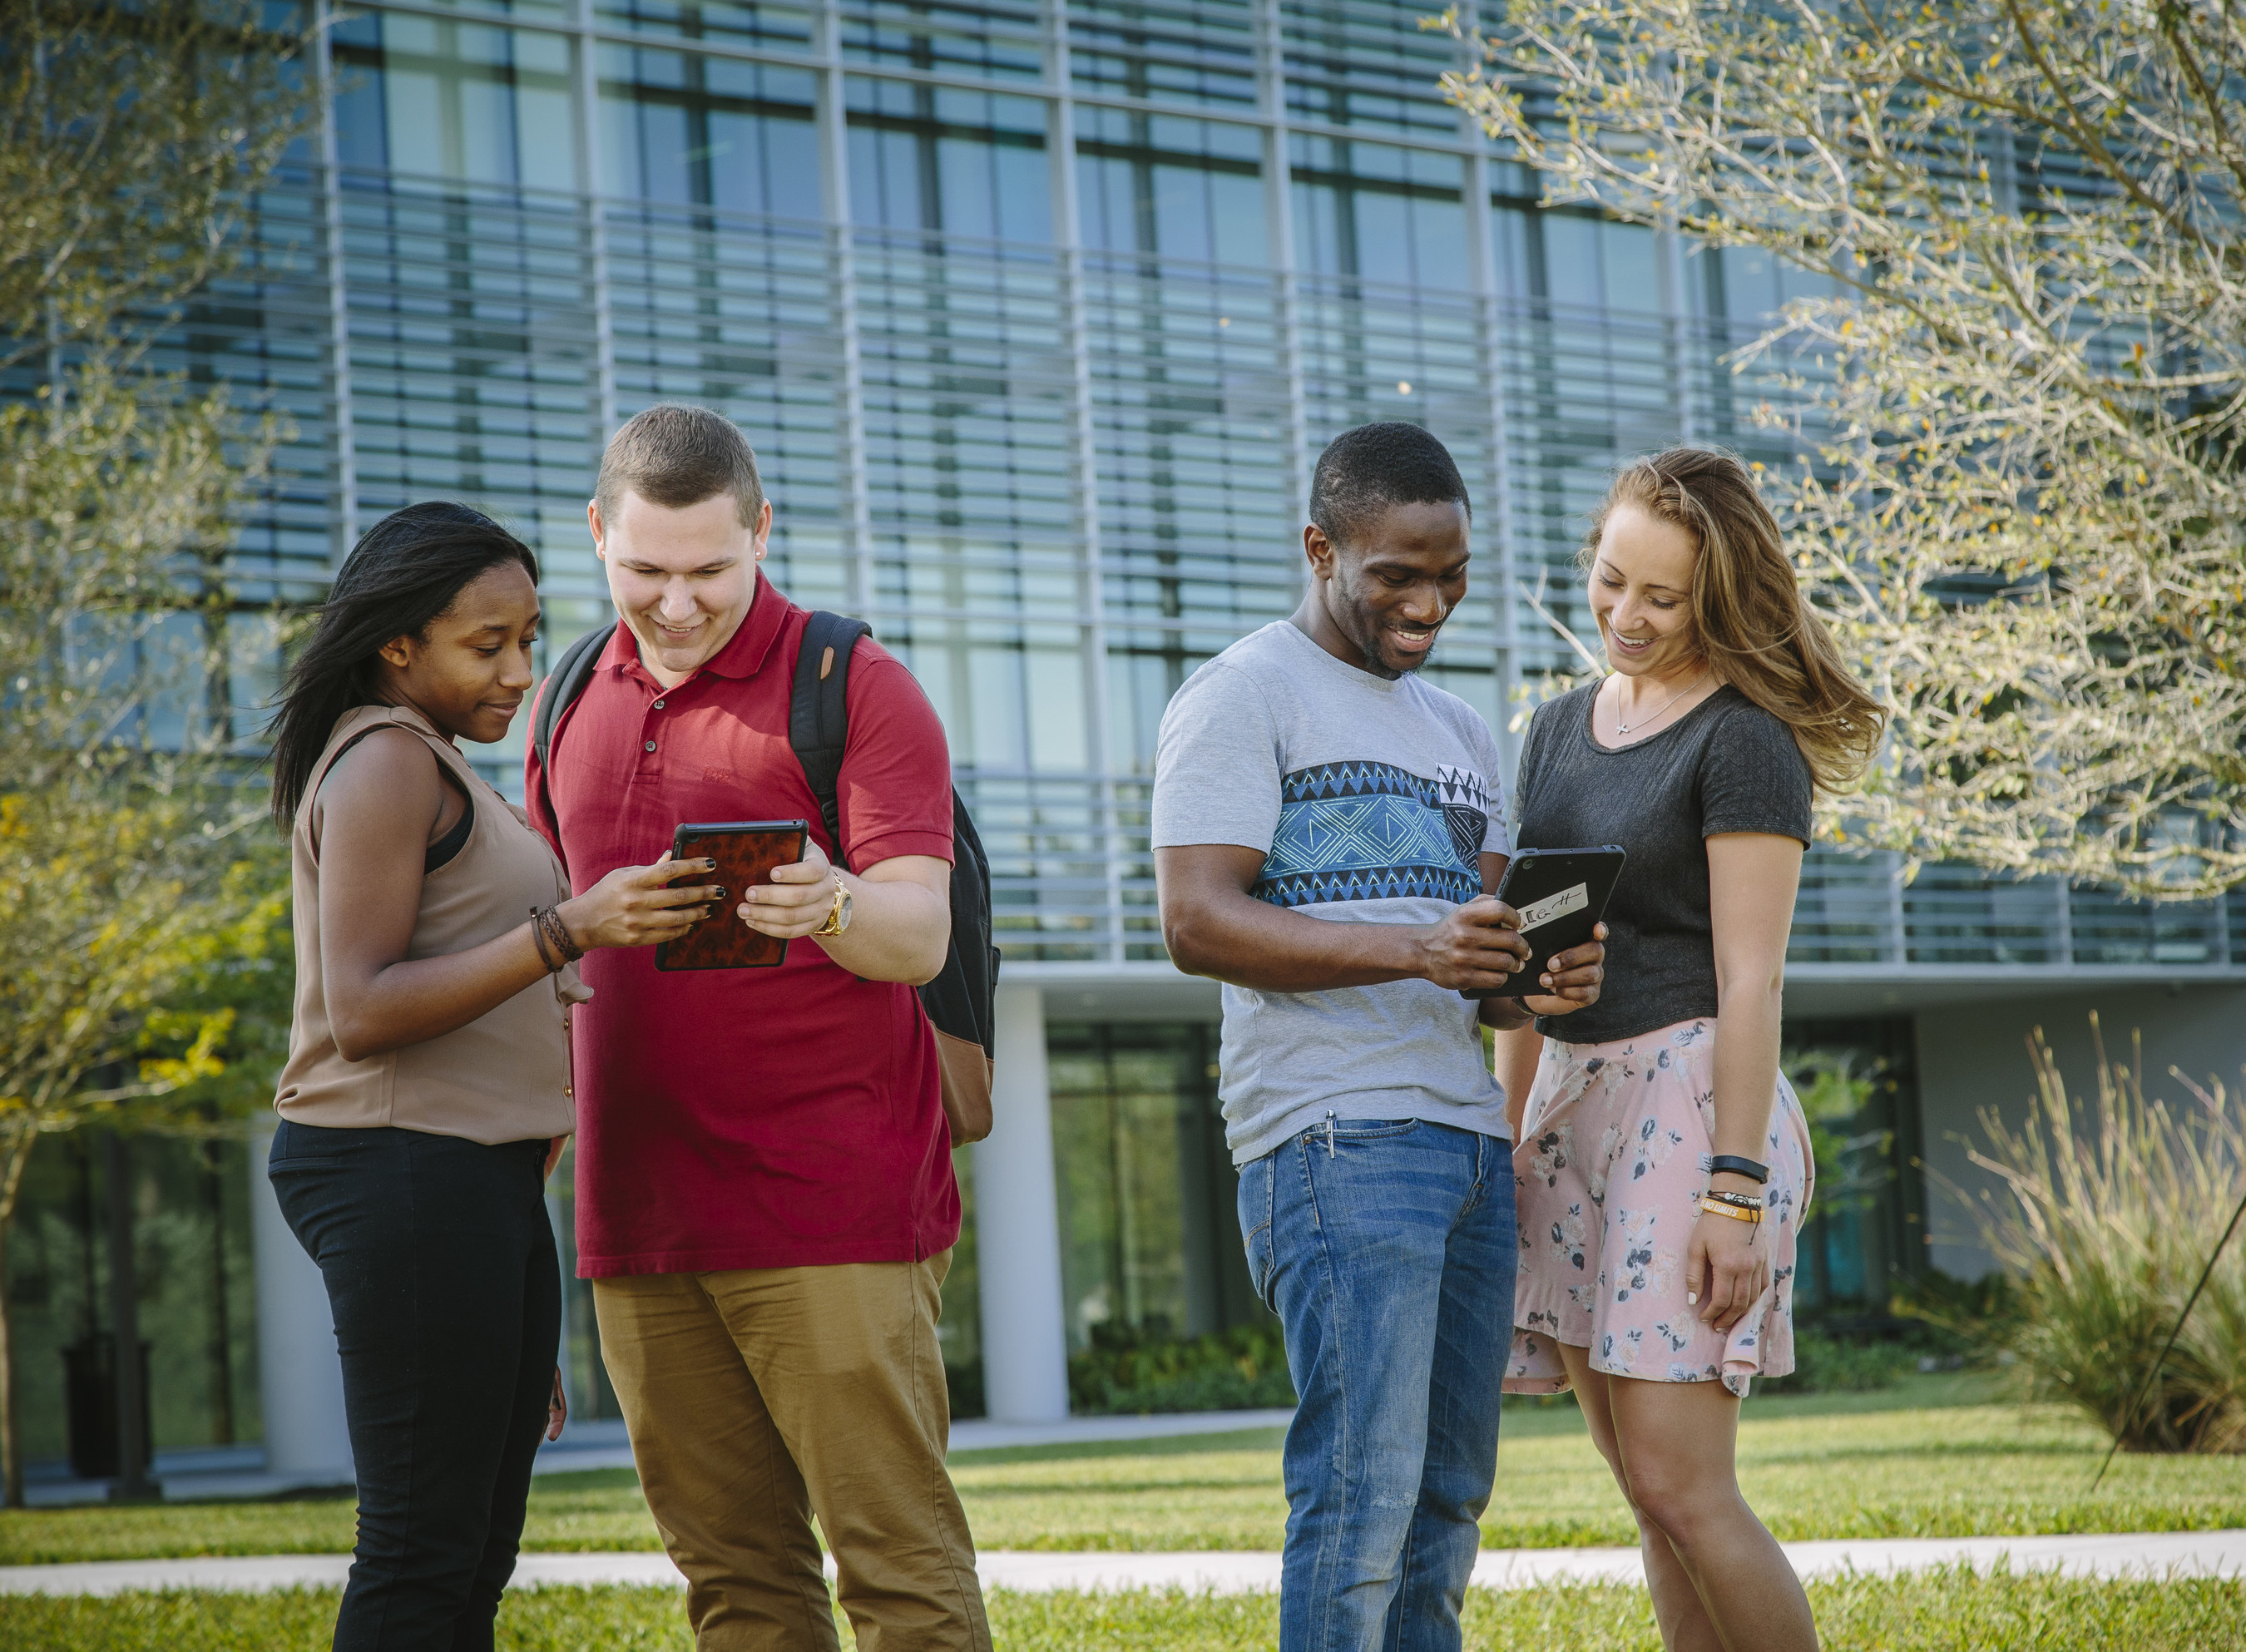 """Lynn University in Boca Raton, Florida was ranked by U.S. News & World Report as one of the top 25 Most Innovative Colleges among National Universities. Lynn also was recognized in """"Best National Universities,"""" """"Most International Universities"""" and """"Best Online Programs"""" lists."""